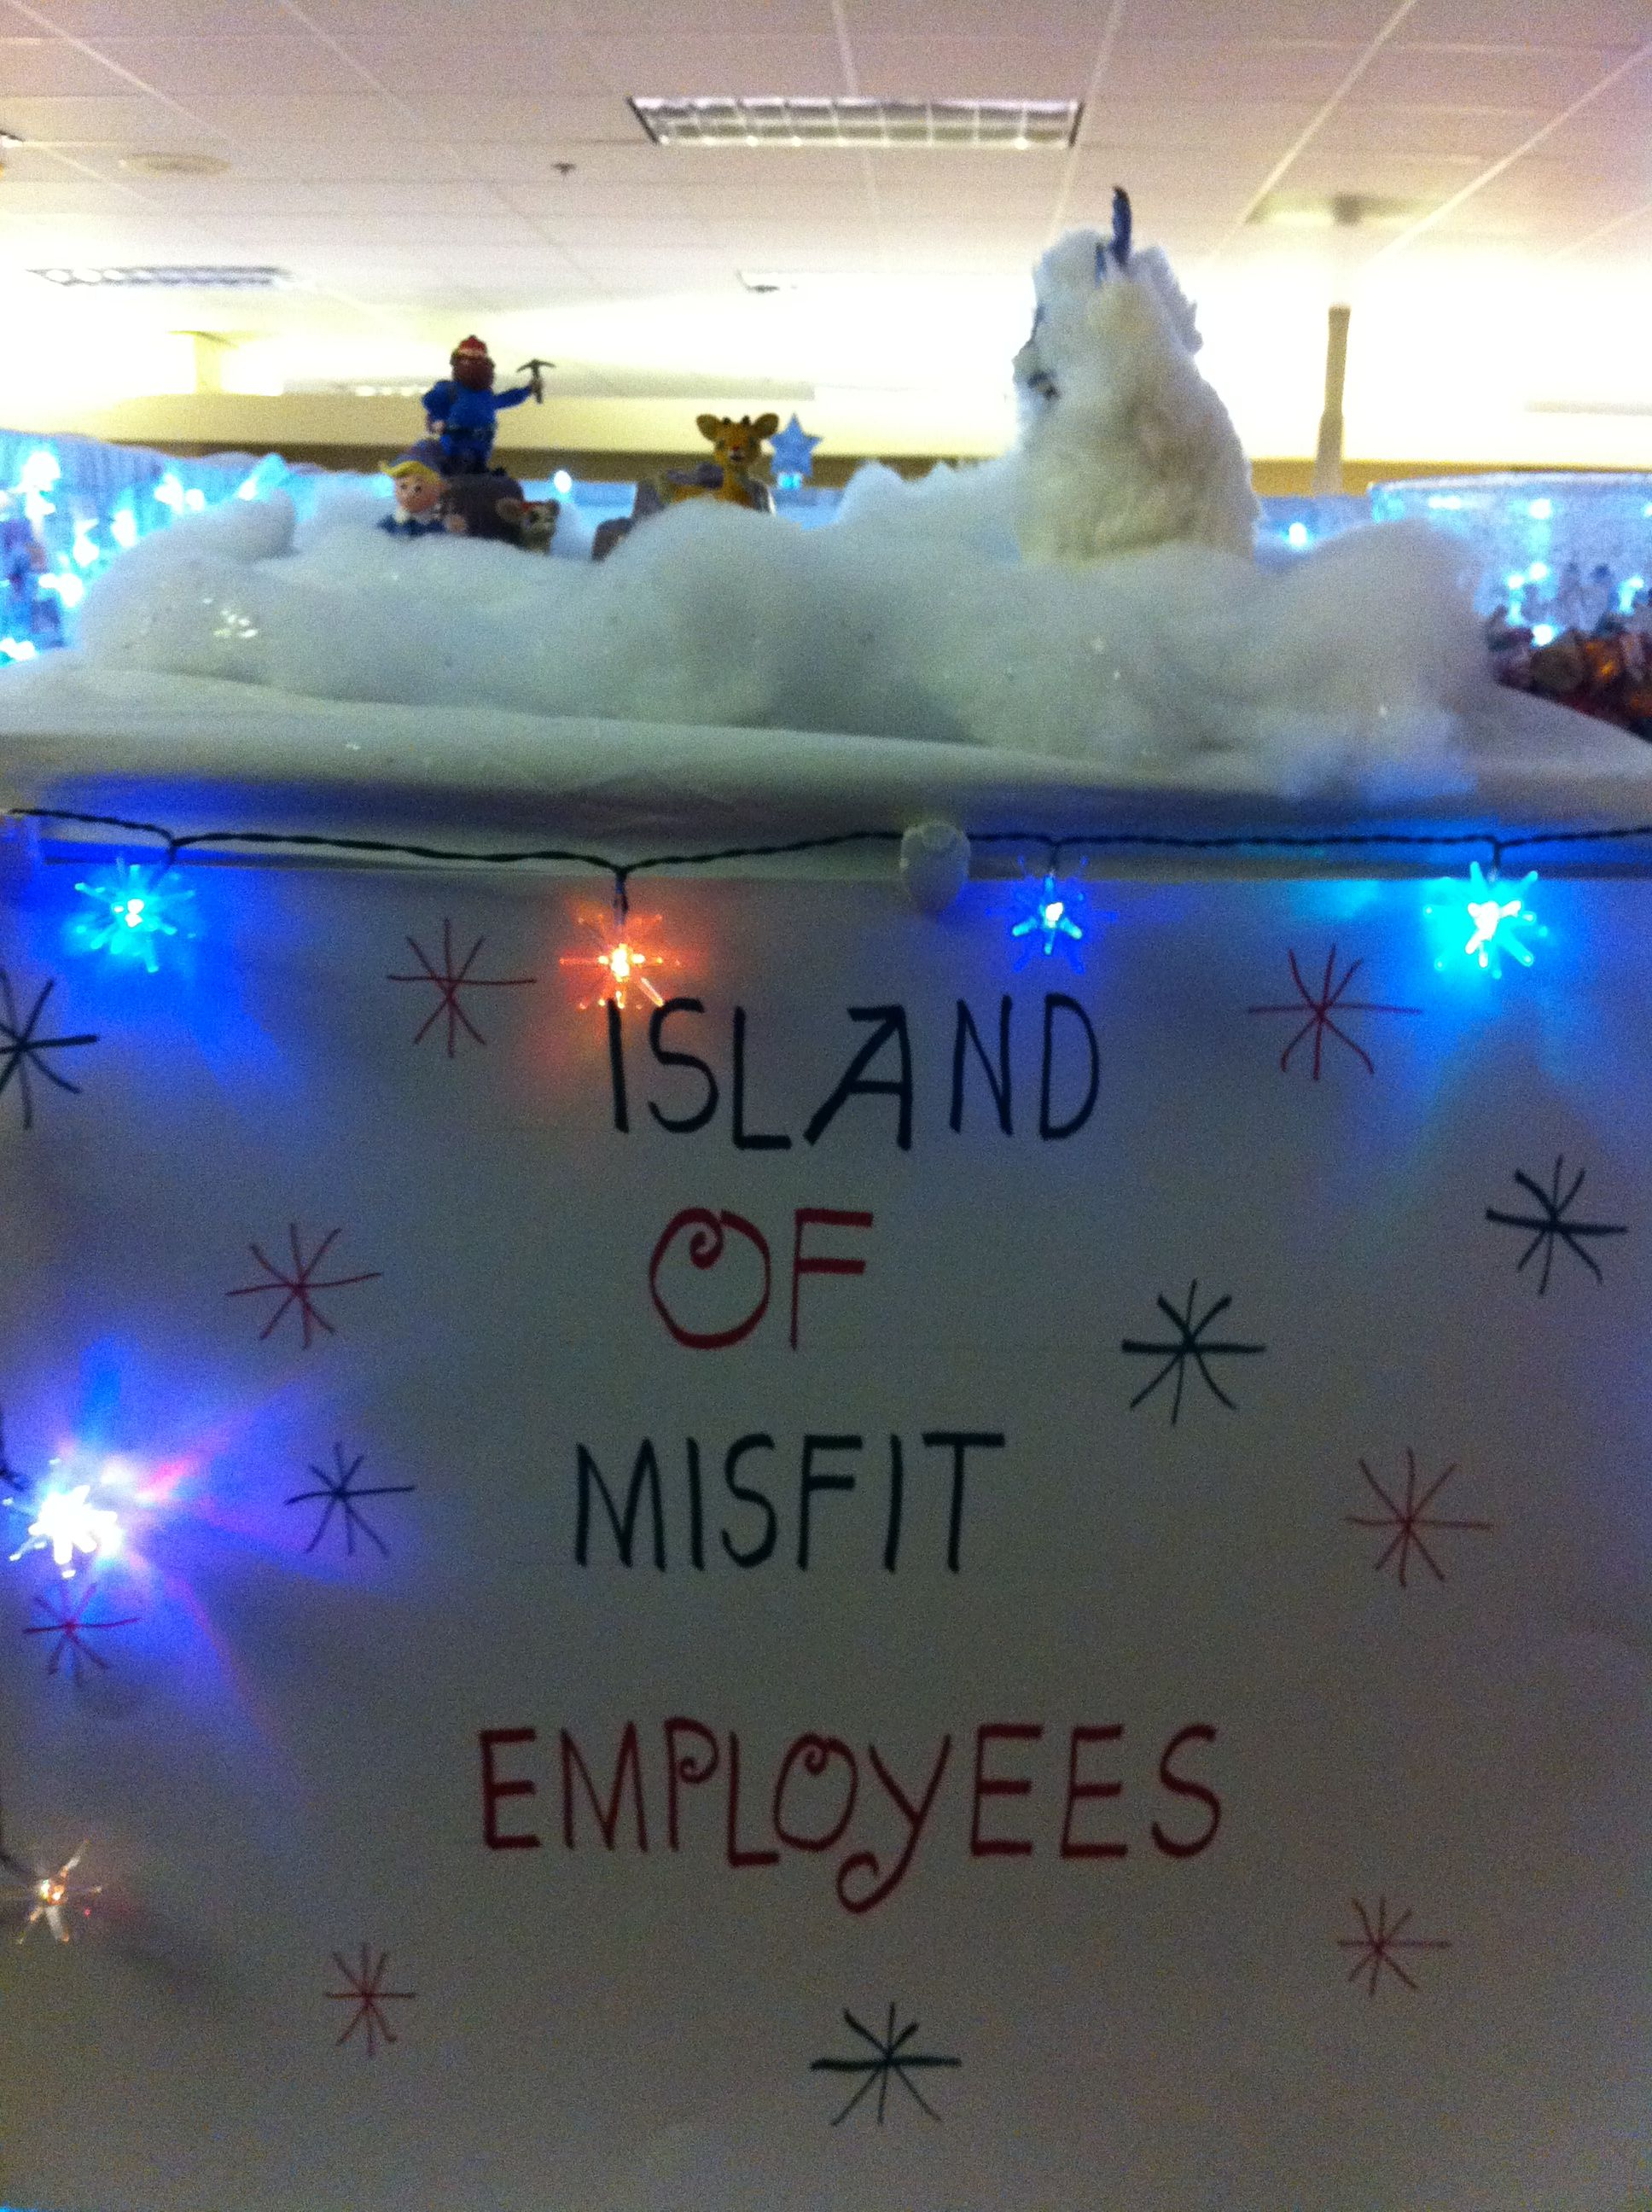 Island Of Misfit Employees Christmas Cubicle Cubicle